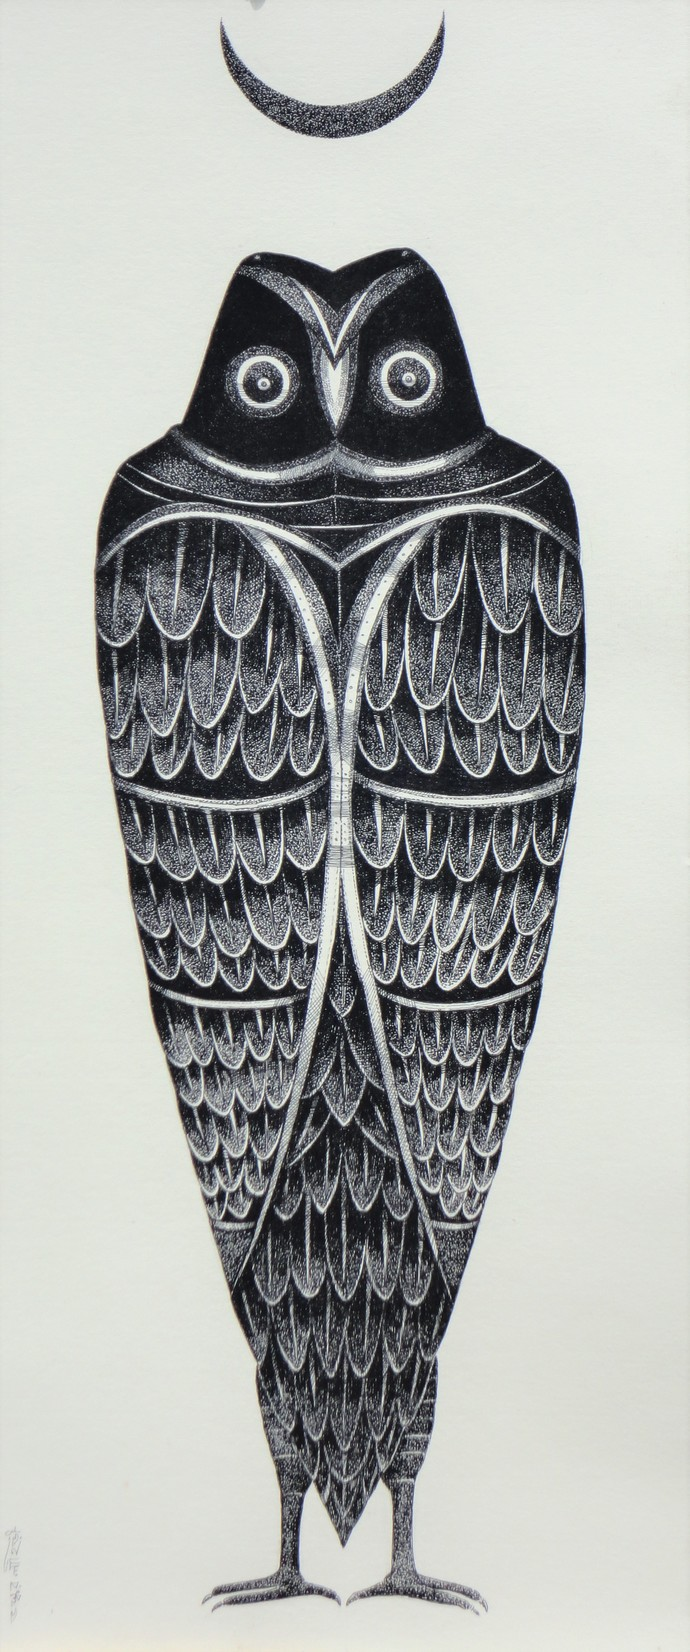 The owl 2 by Bhaskar Lahiri, Illustration Drawing, Pen & Ink on Paper, Gray color